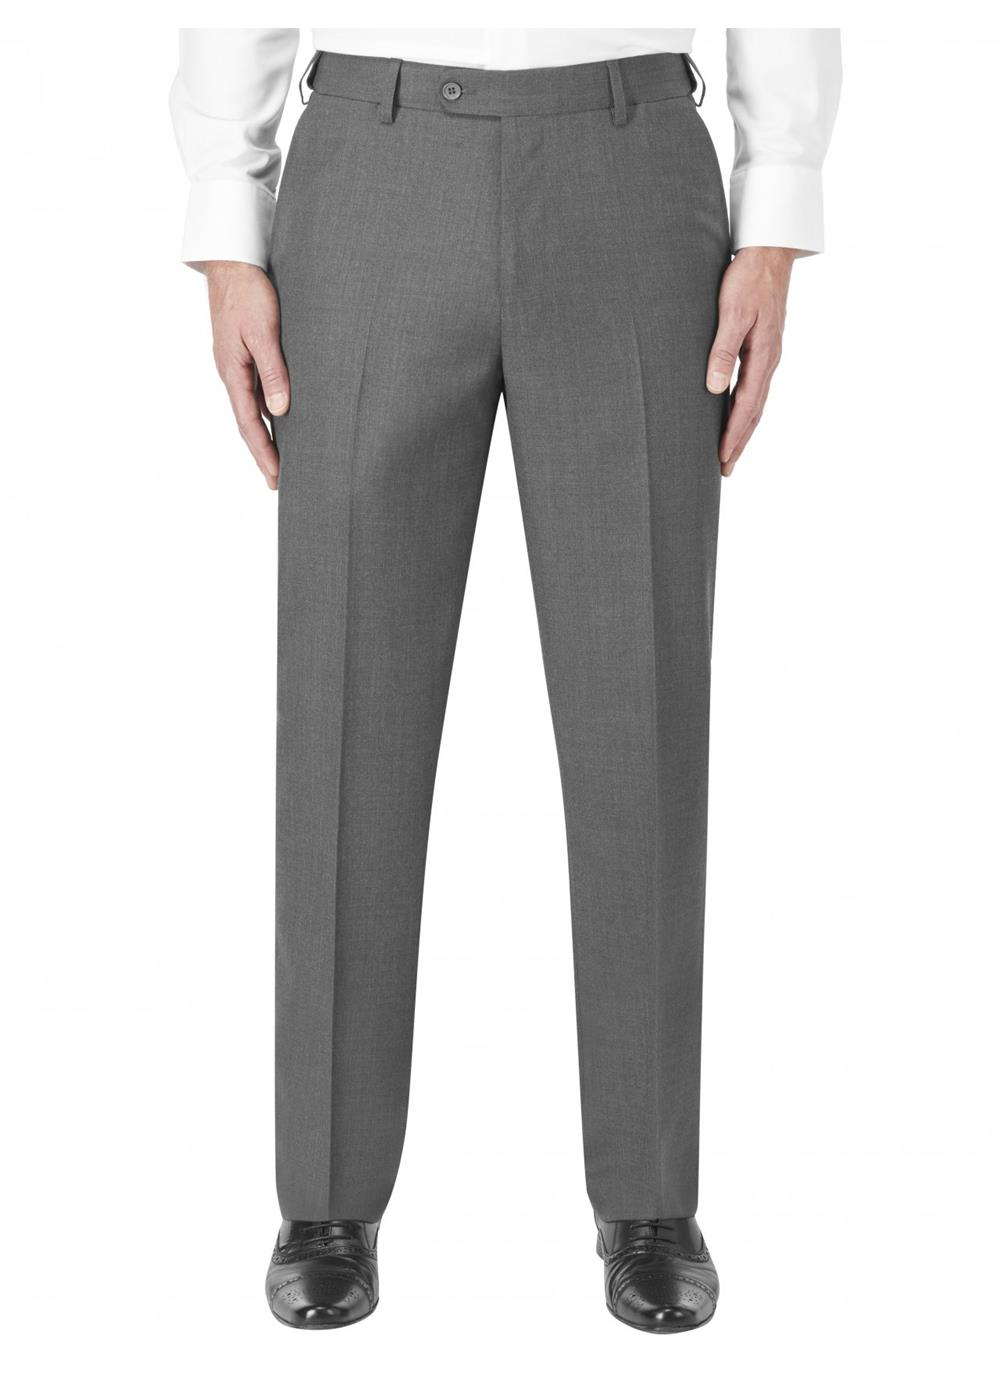 wexford formal trouser (grey)